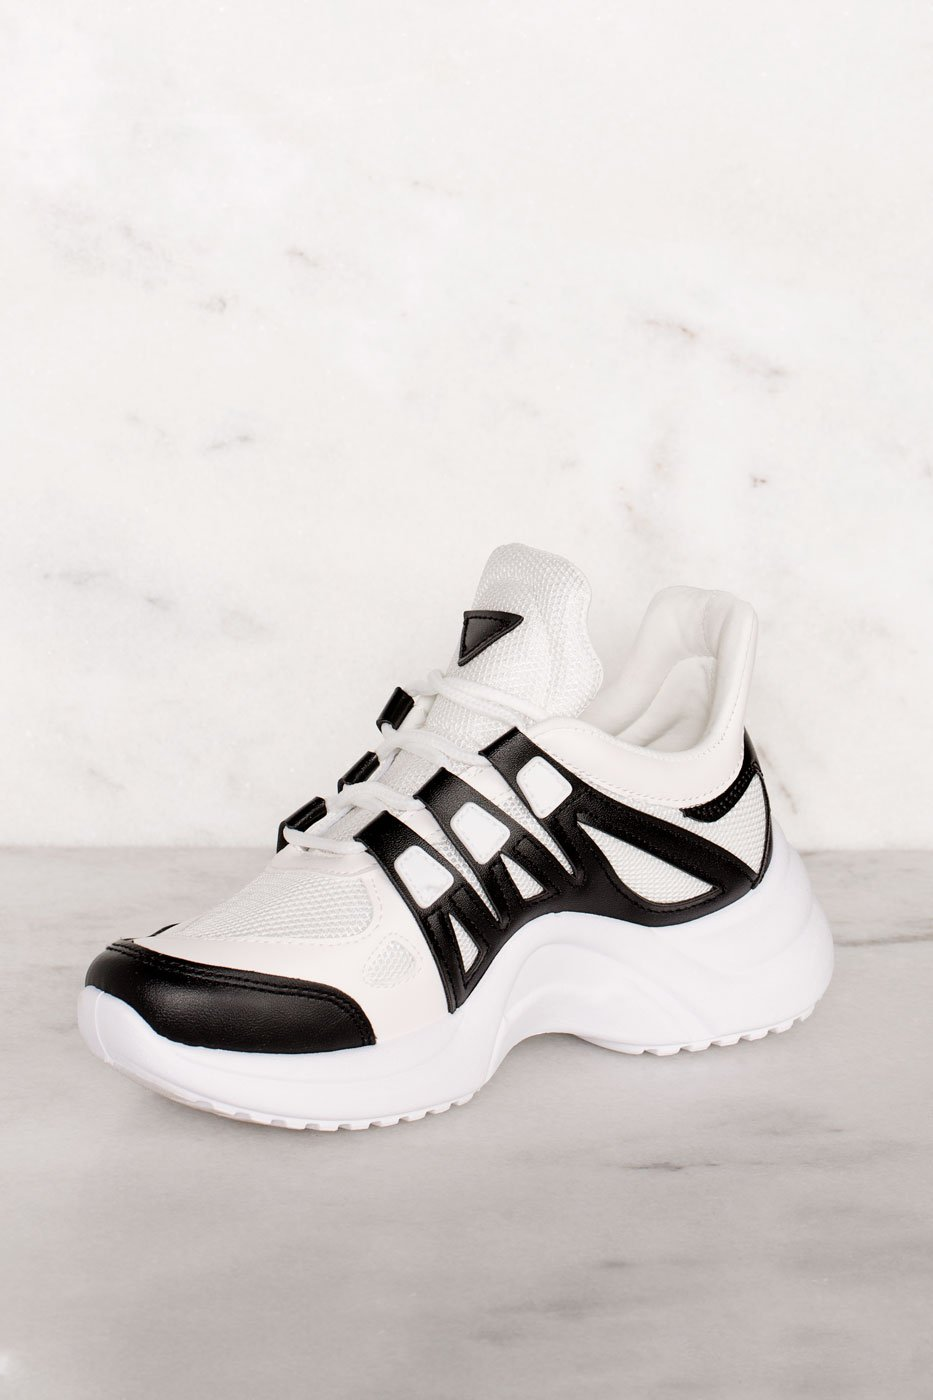 Shoes - Sporty Black And White Athletic Sneakers